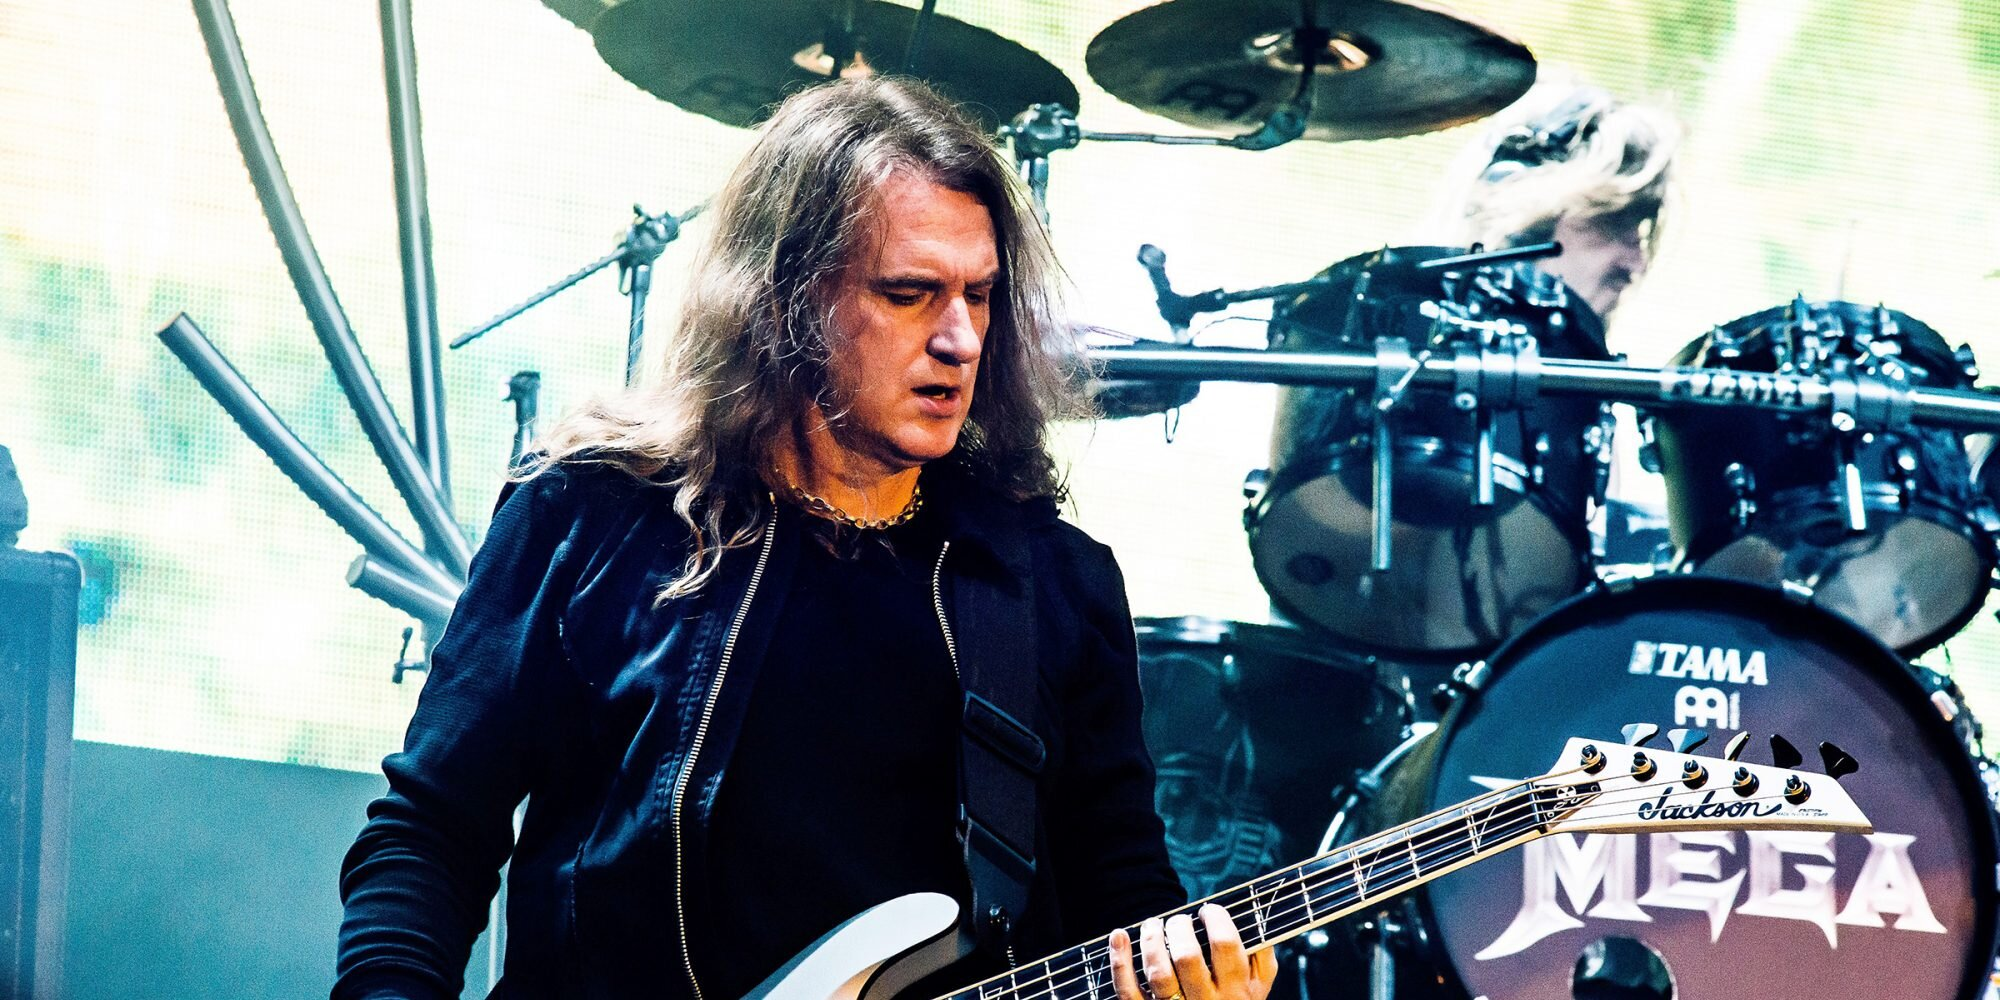 Megadeath's David Ellefson Responds to Leak of 'Embarrassing' Videos: 'These Were Private, Adult Interactions'.jpg